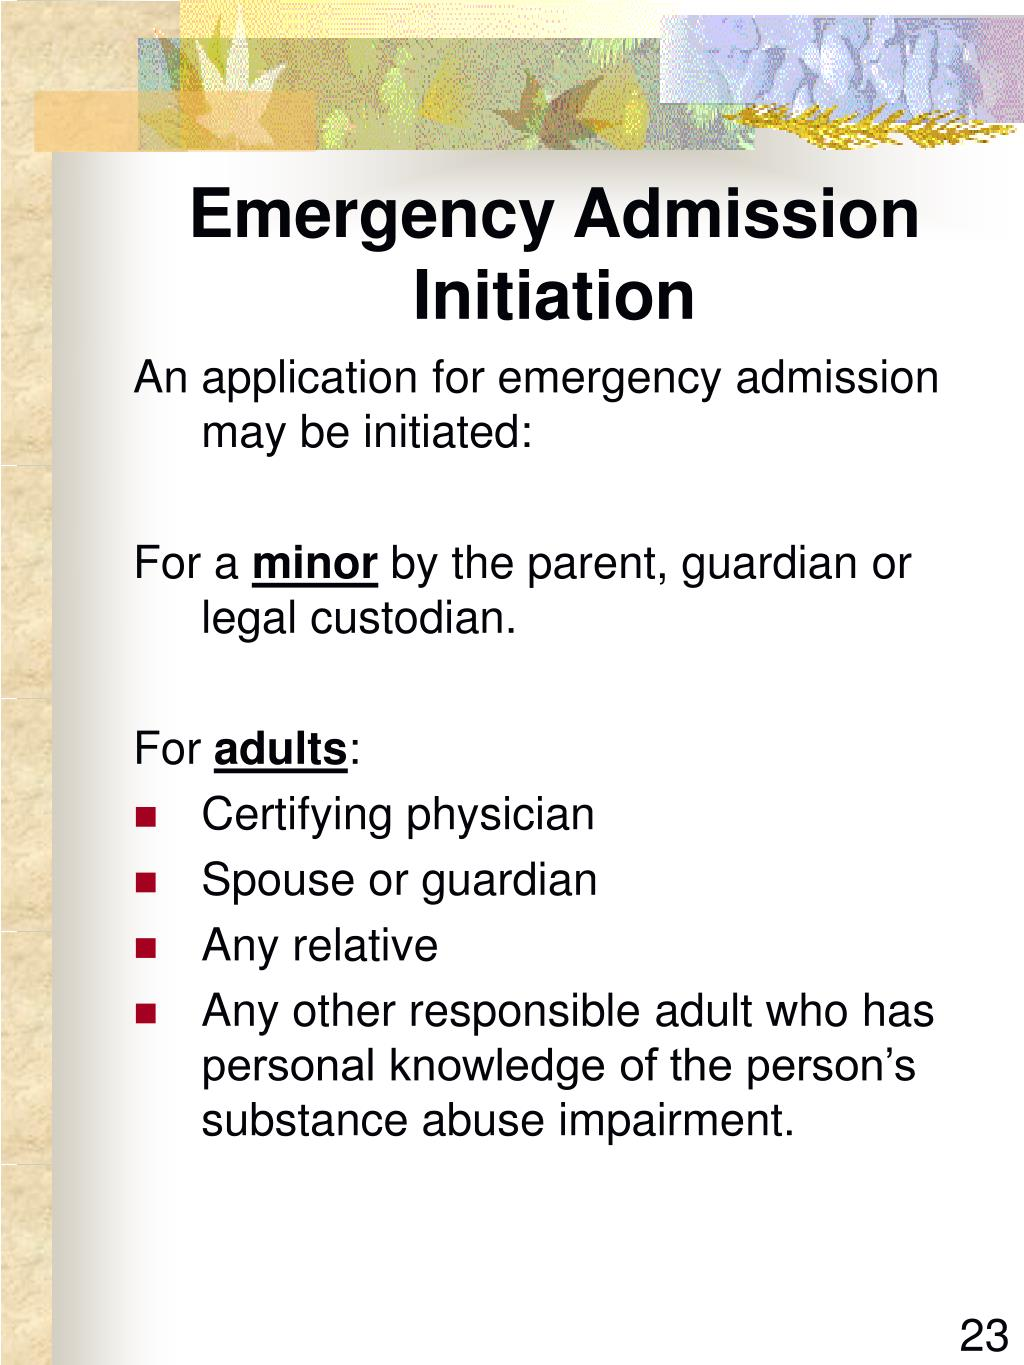 Emergency Admission